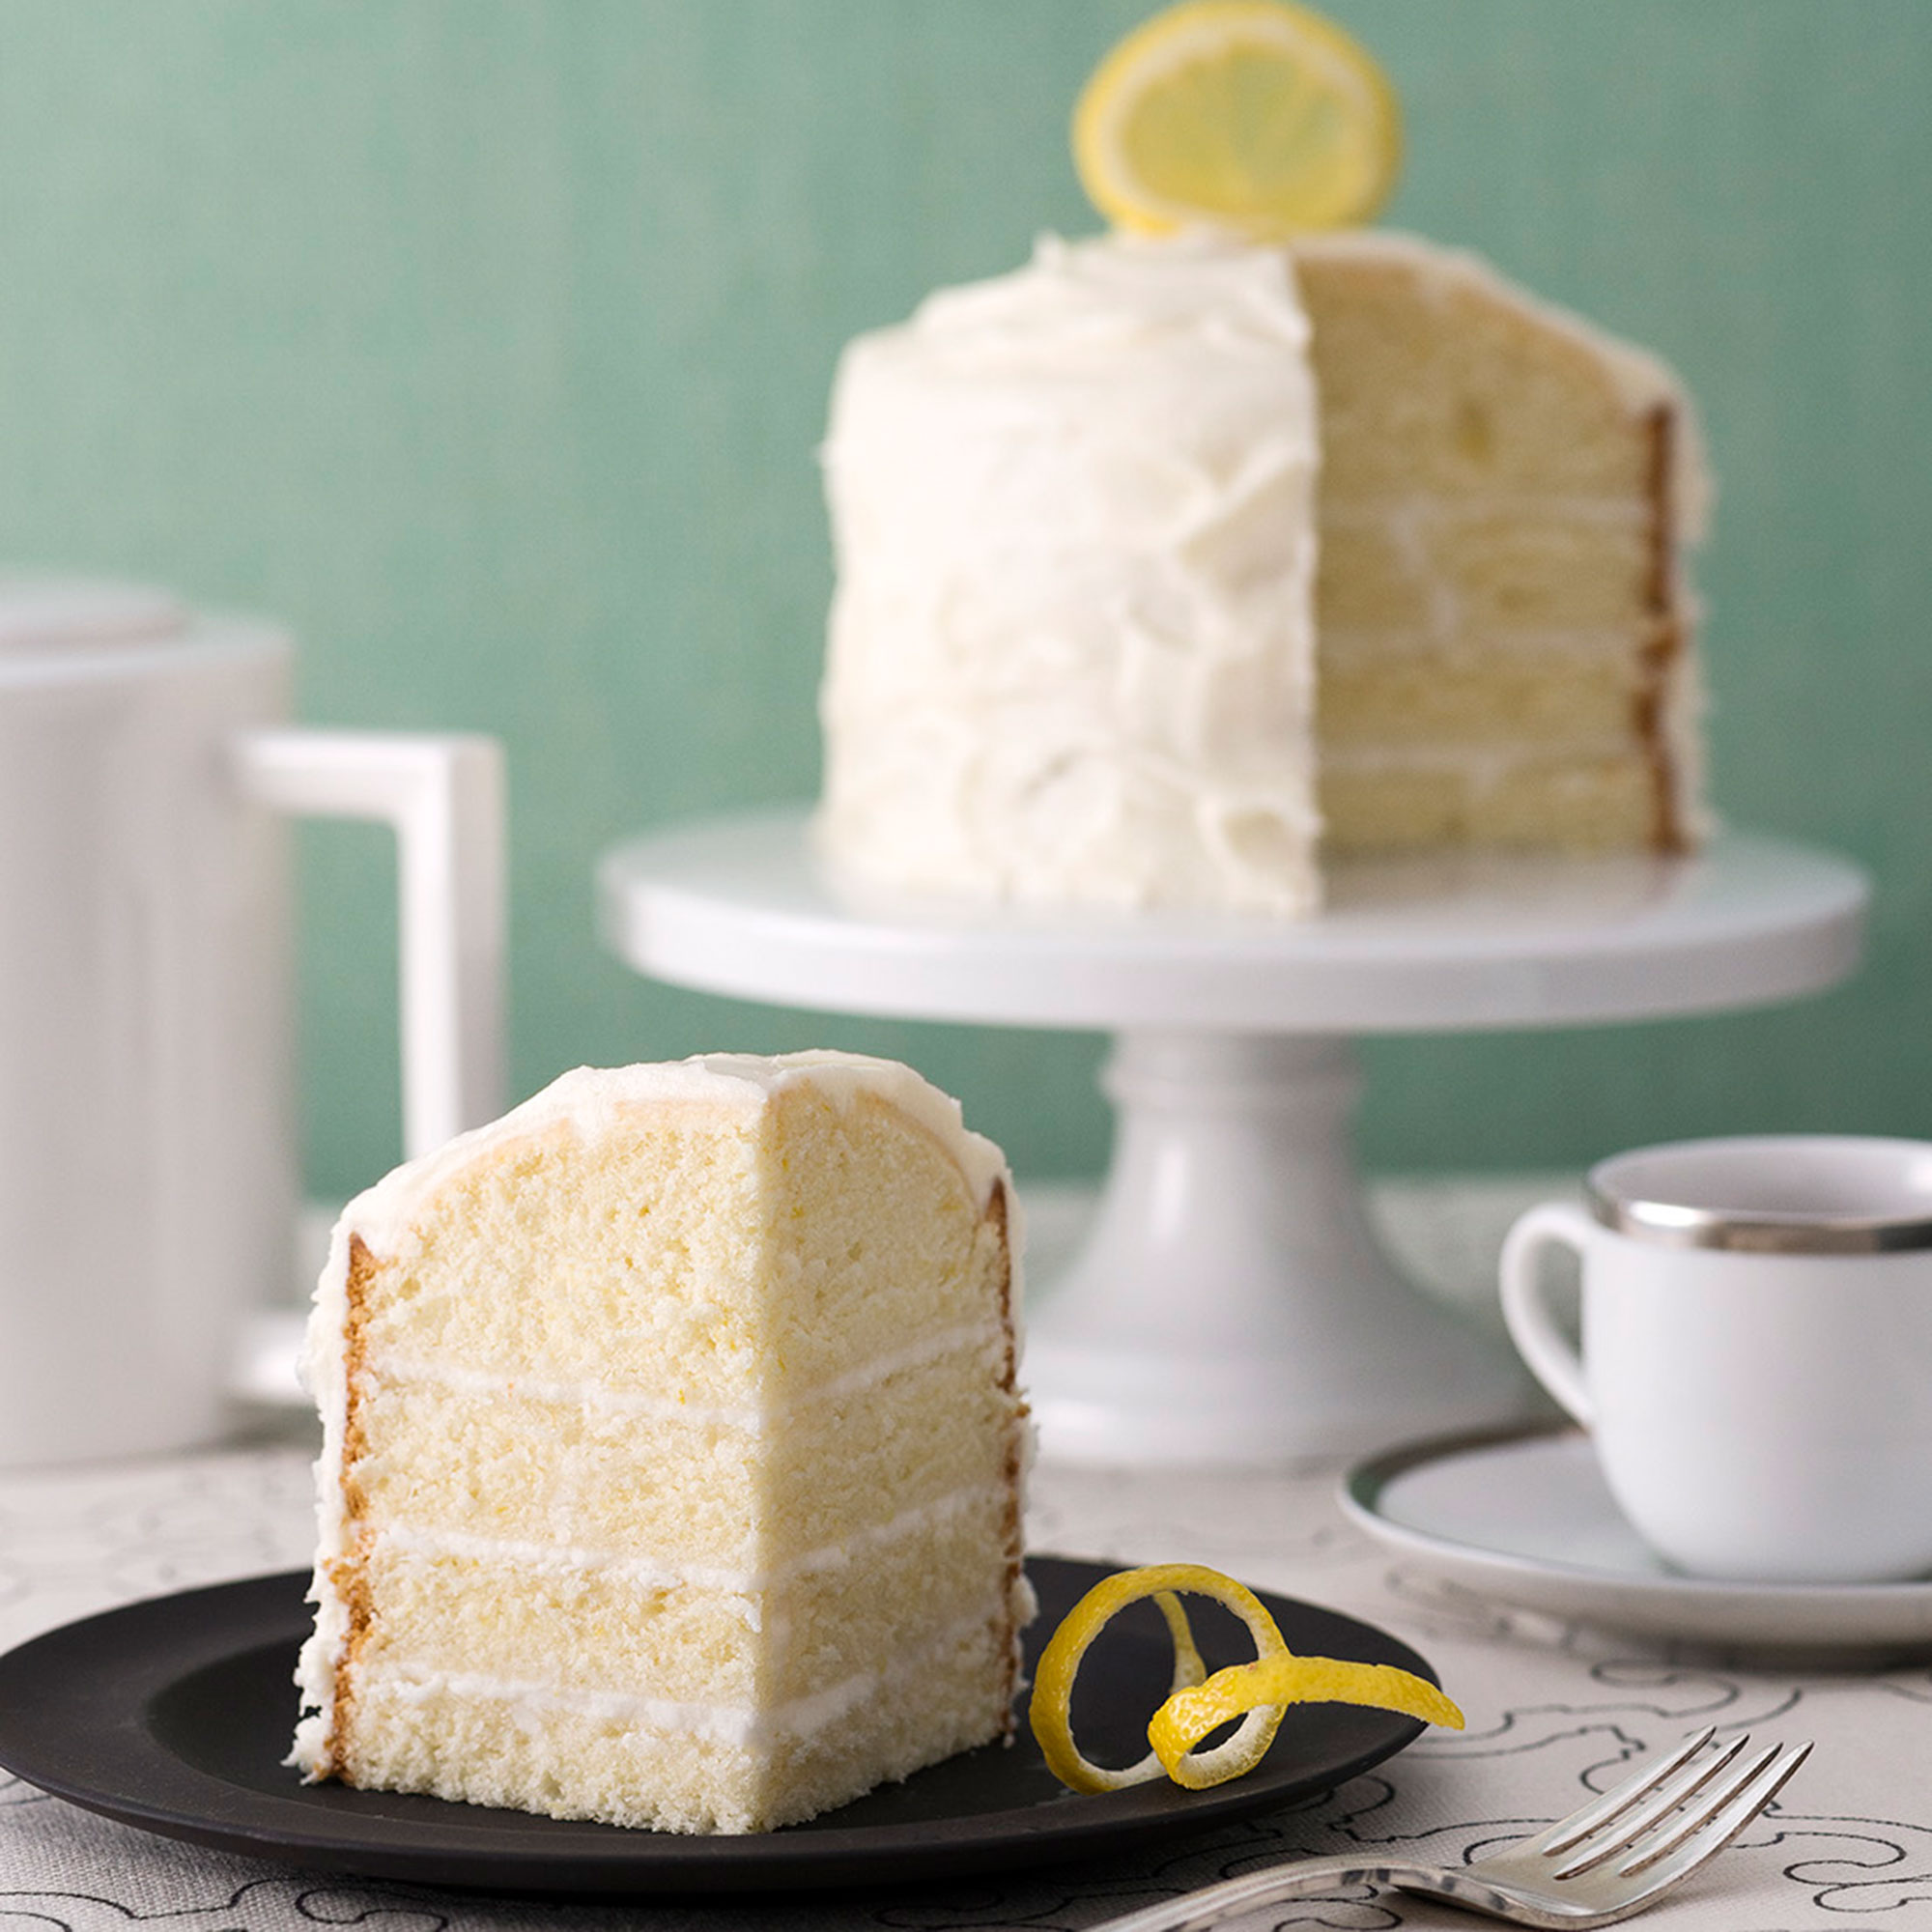 Lemon sorbet fans will adore this tiny lemon sorbet cake perfect for summer parties